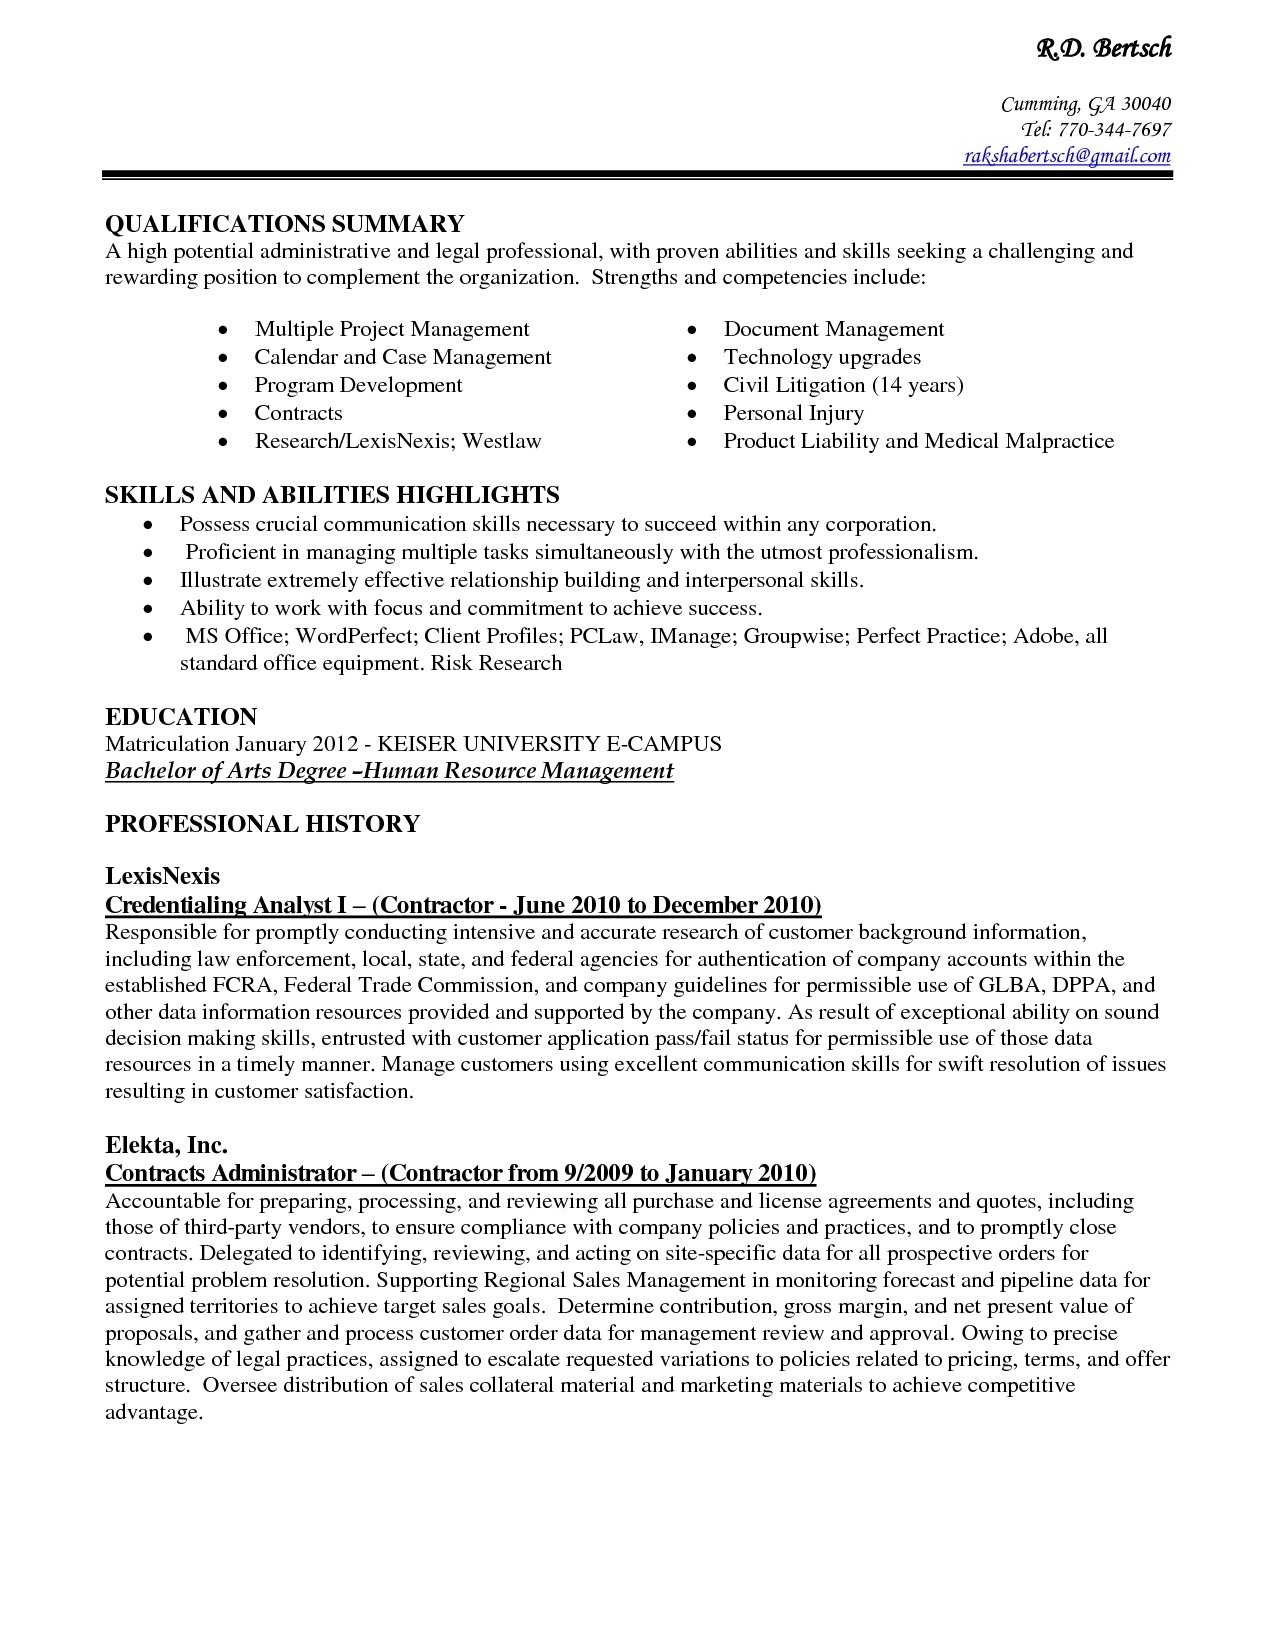 resume for office assistant examples example qualifications summary administrative with